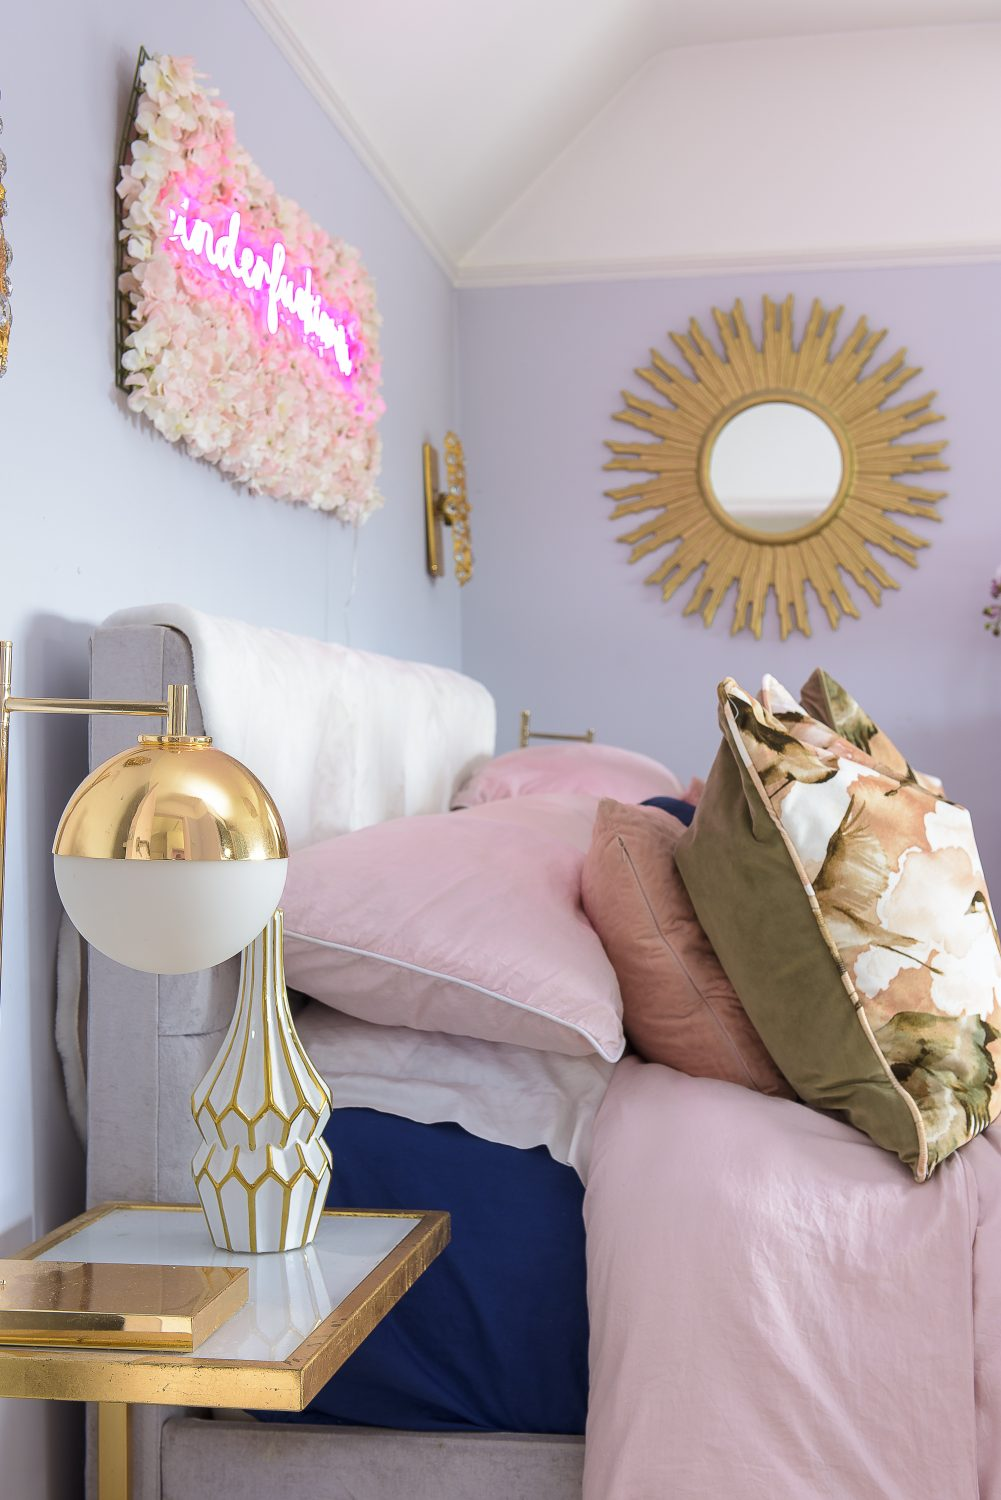 Gold and white orb lamps, found at HomeSense, are a feature throughout the house, this time in the form of bedside lamps in the master bedroom. The cushions on the bed are a heron print by Feather & Black